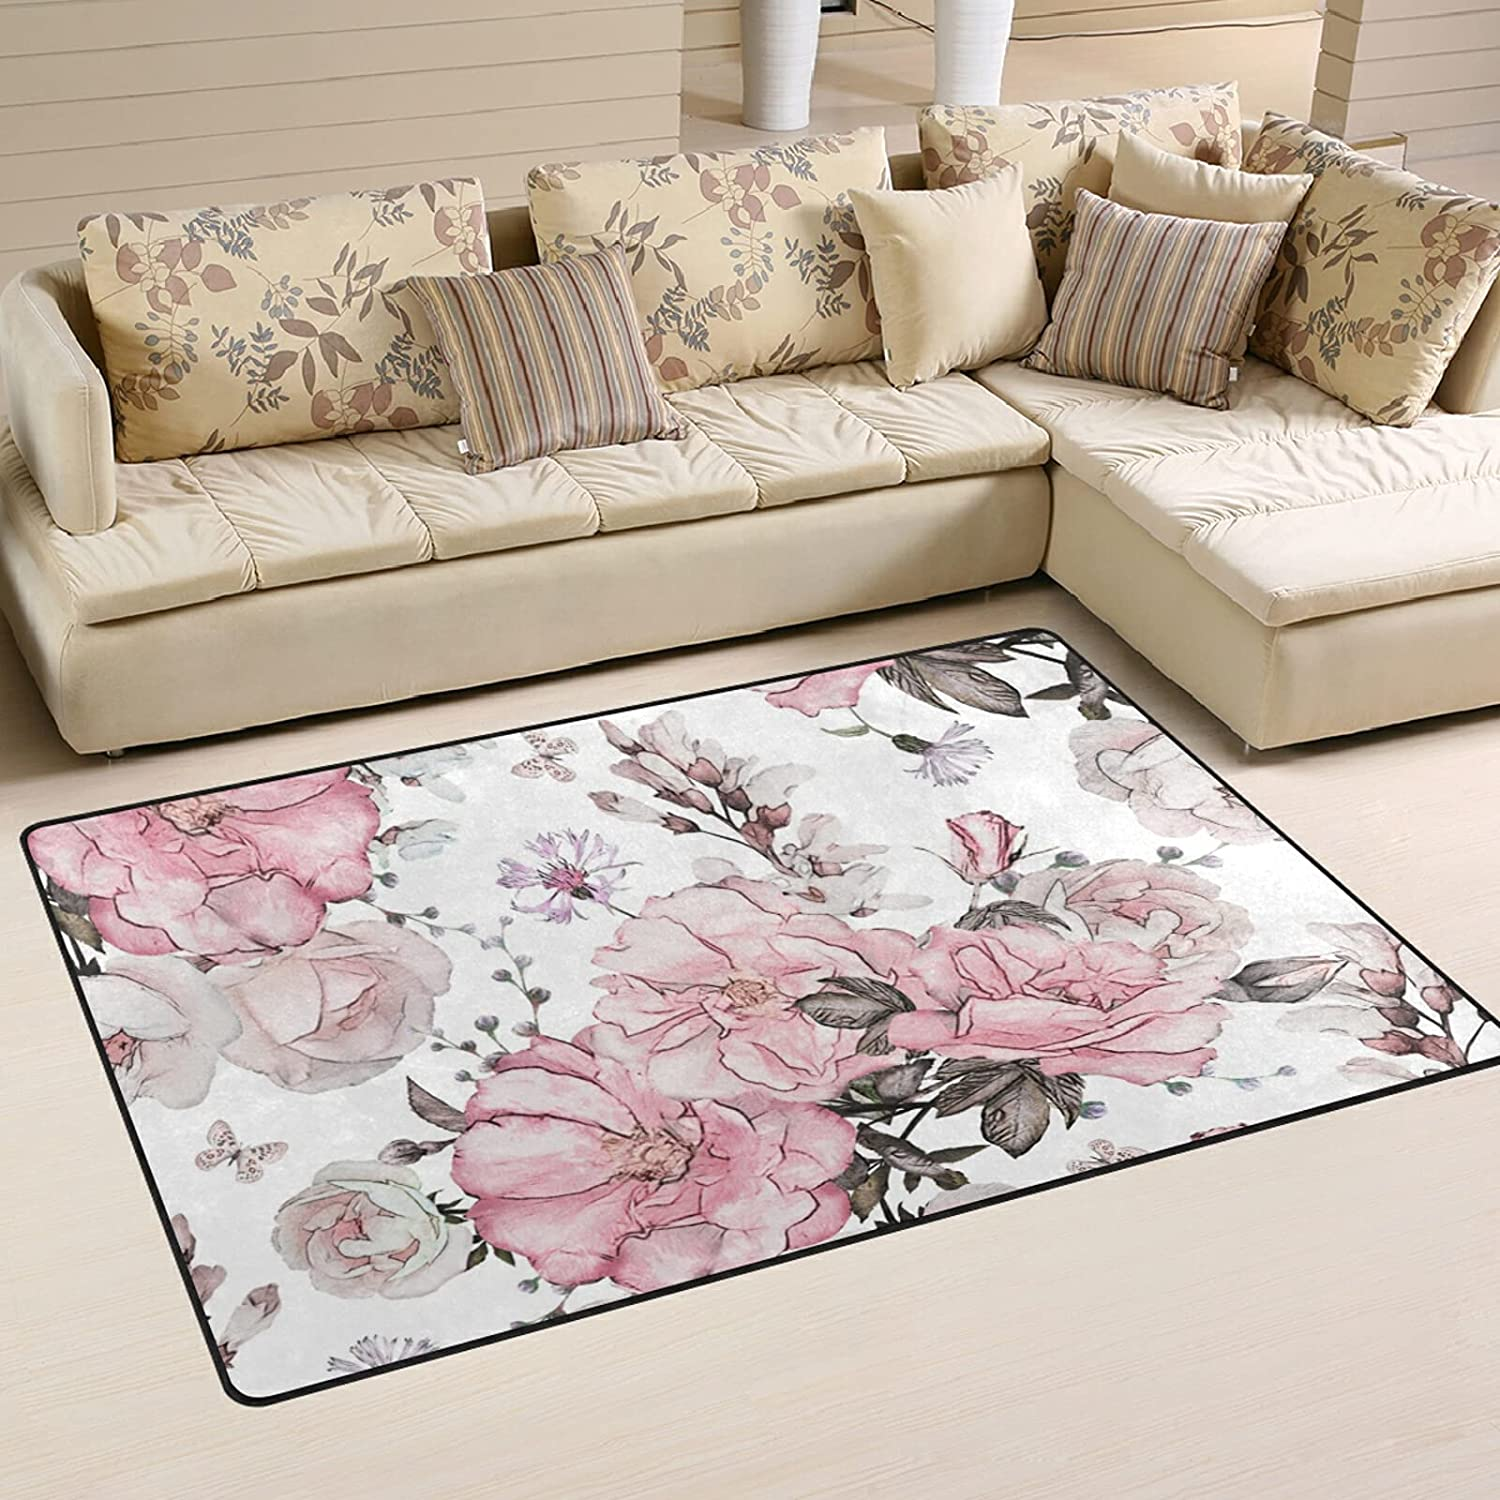 Pink Flowers Leaves Large Soft Area Rug Rugs Mat Popular brand in the Import world Playmat Nursery